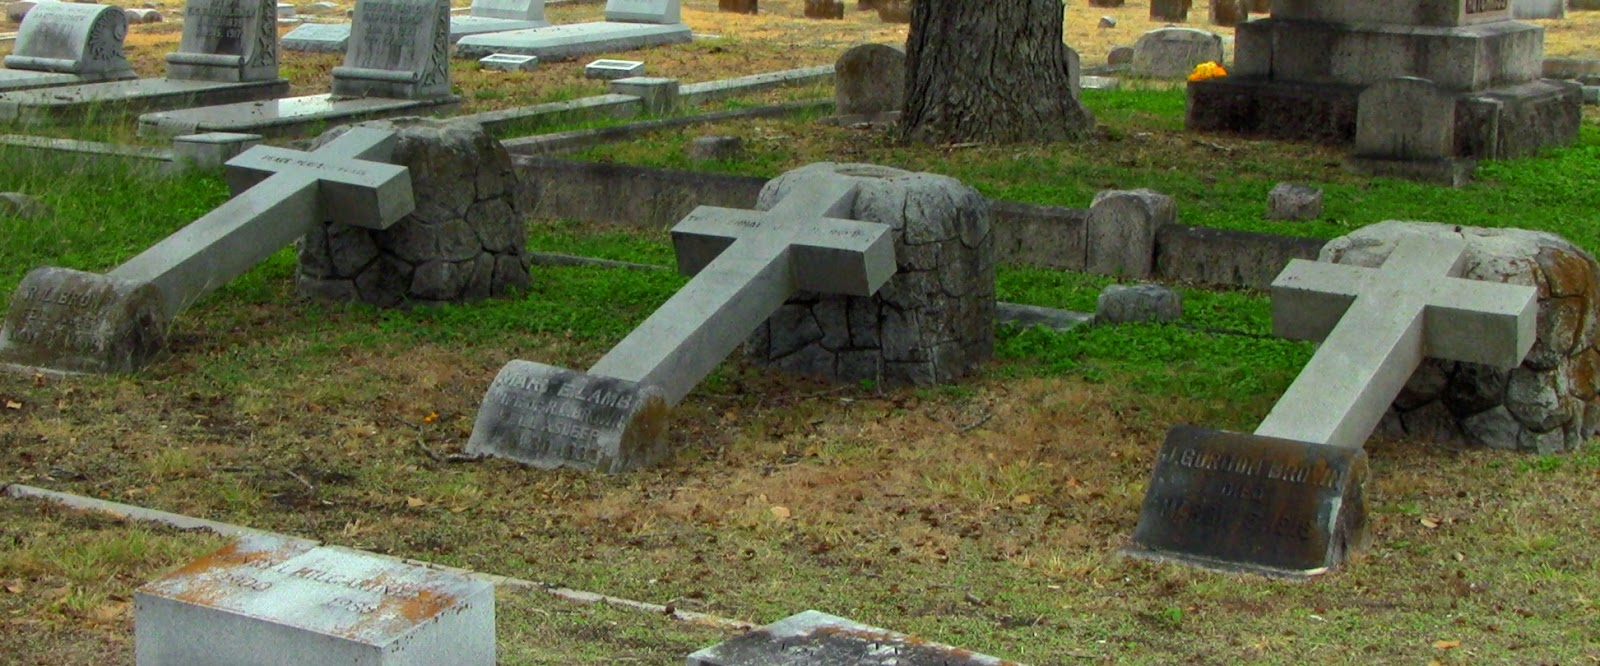 Most haunted places in texas http www deadexplorer com 2011 10 most